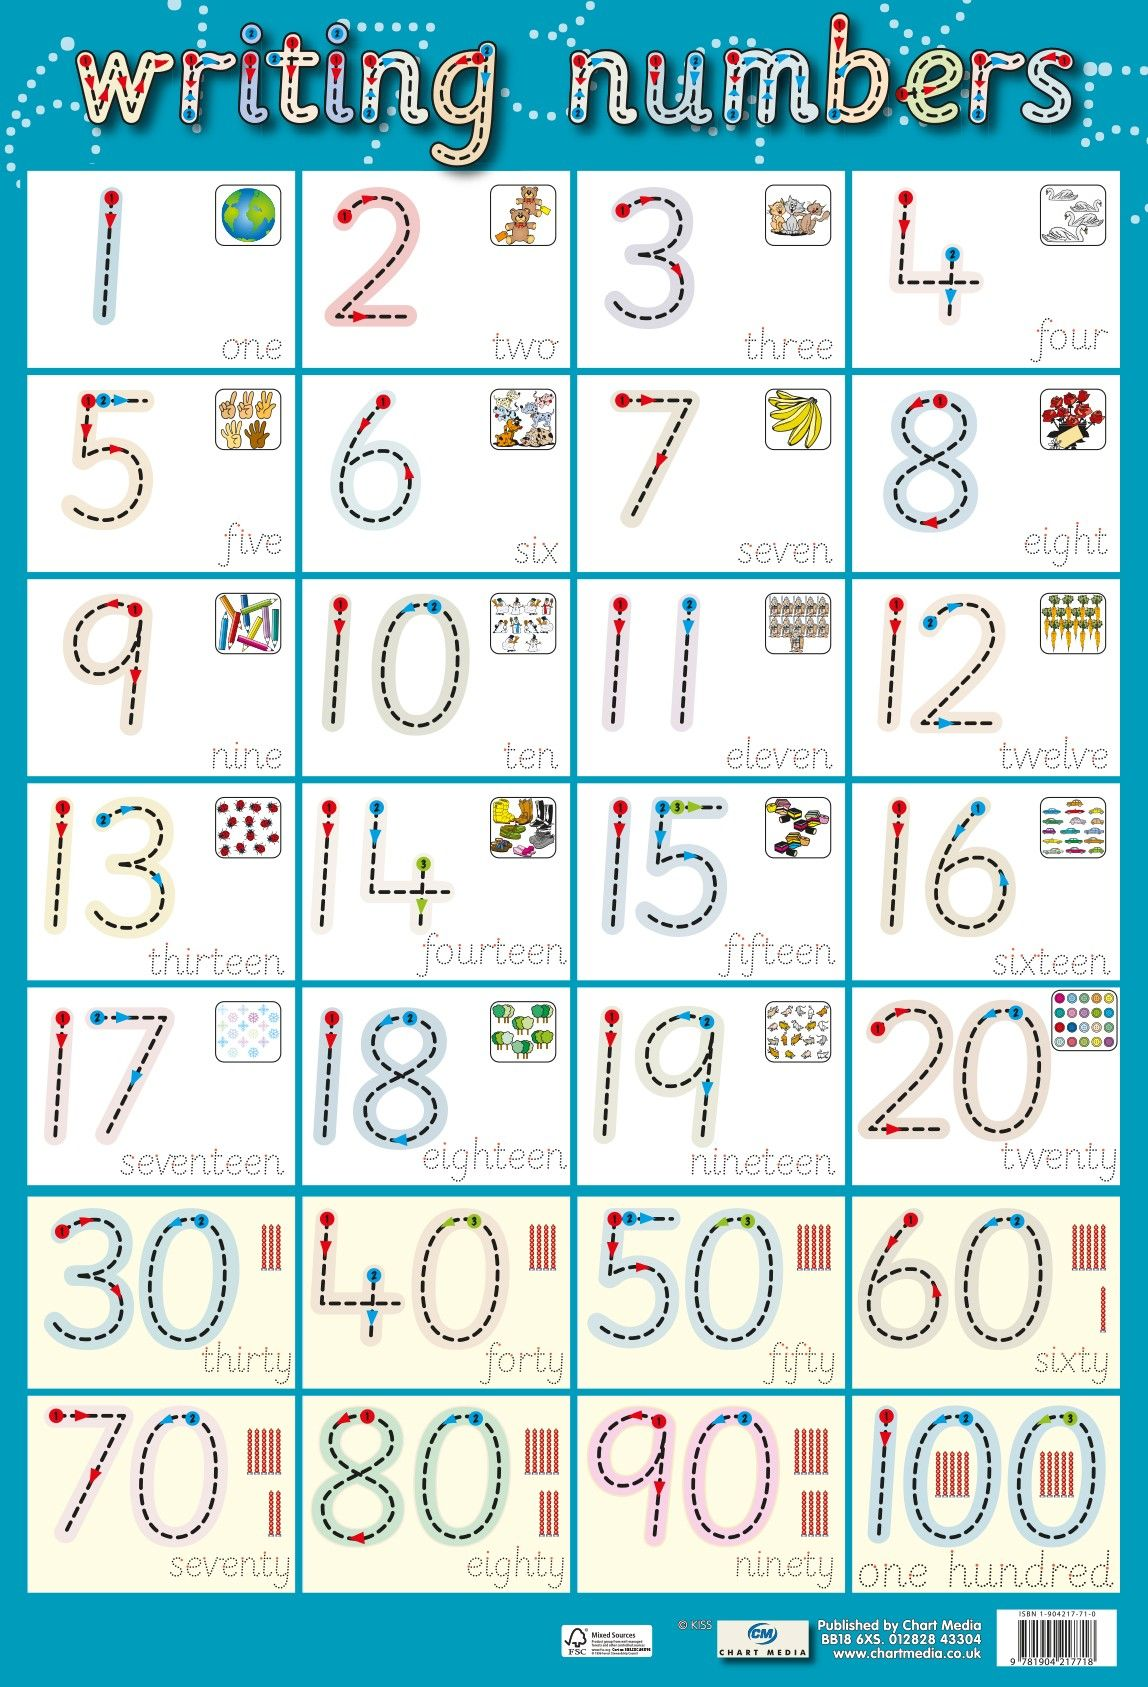 Buy This Writing Numbers Poster By Chart Media We Have